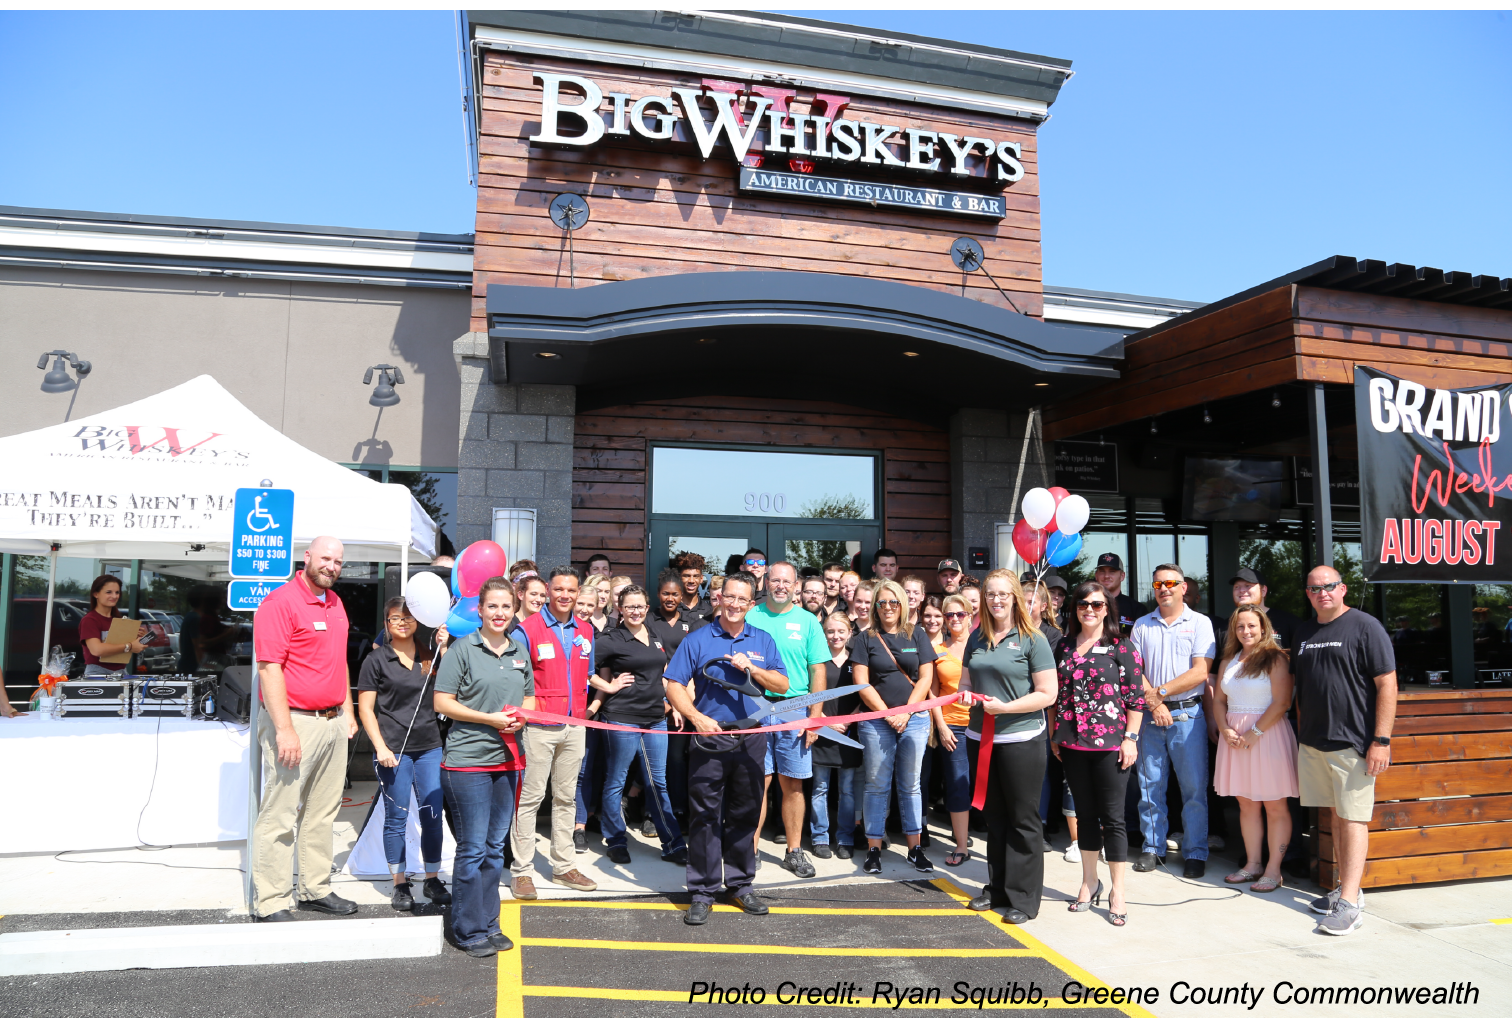 Republic A Huge Success, Big Whiskey's Toasts to 6th Store